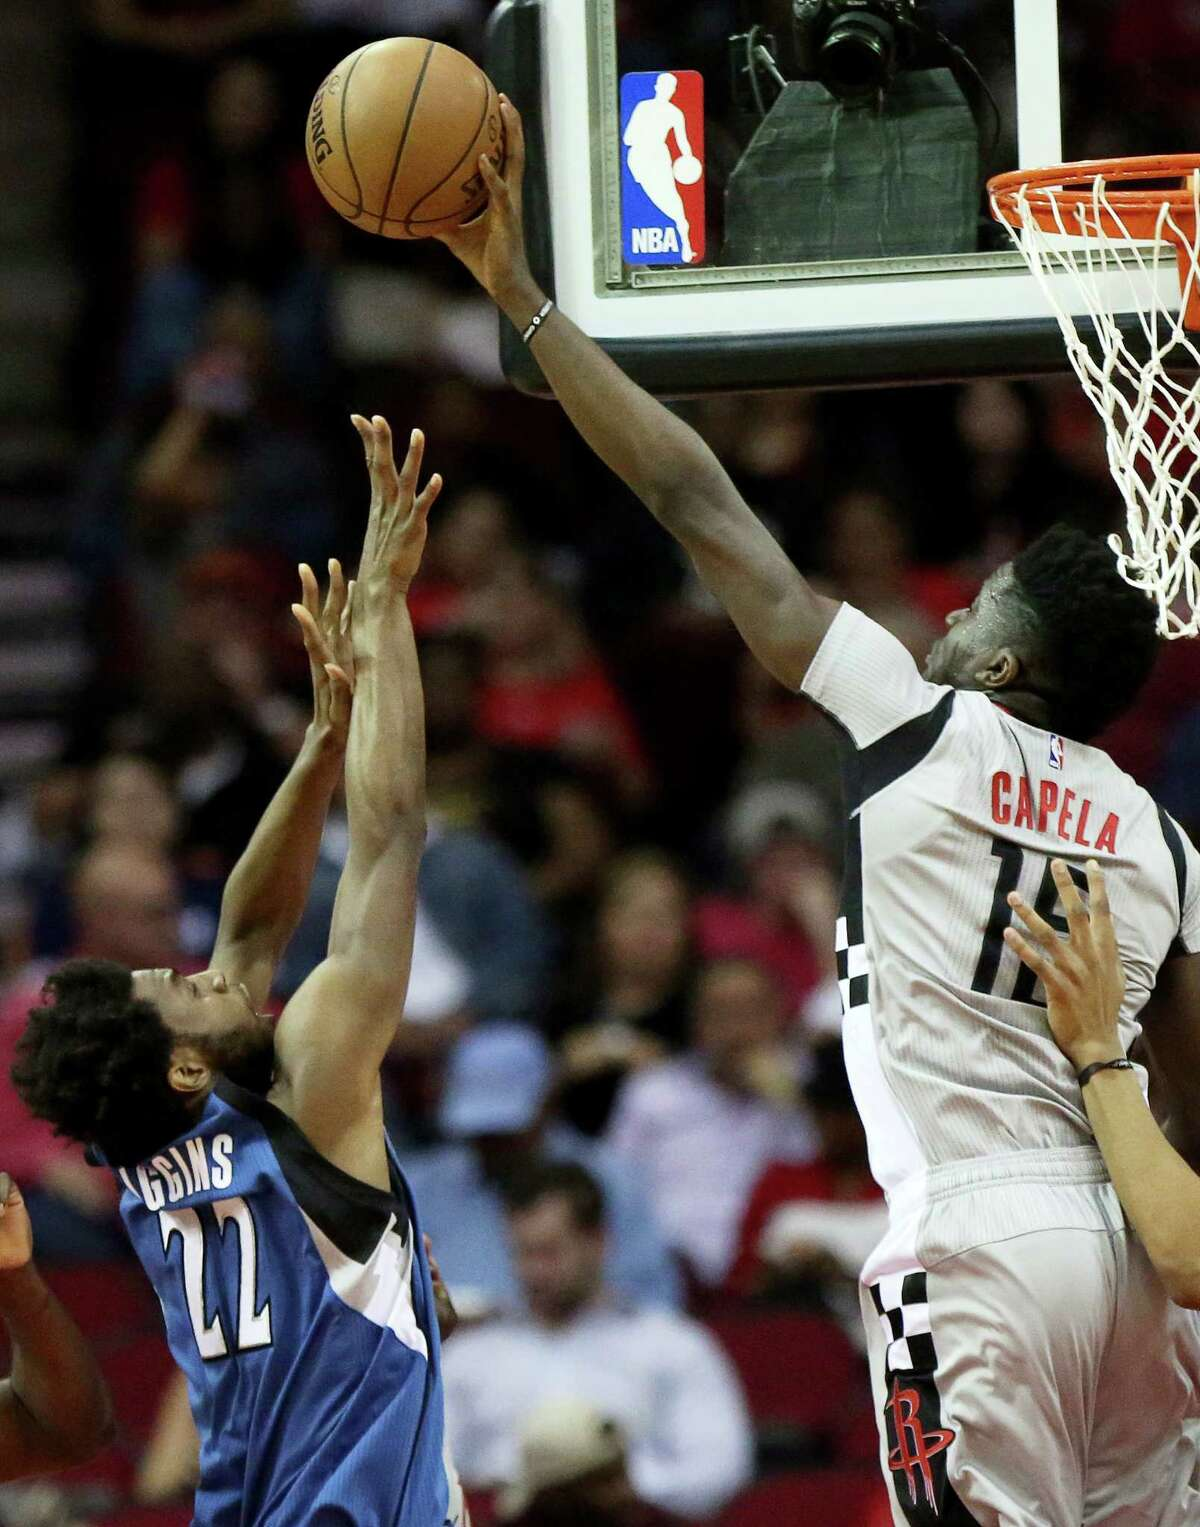 Houston Rockets center Clint Capela (15) blocks Minnesota Timberwolves forward Andrew Wiggins (22) during the first quarter of the game at Toyota Center Saturday, Feb. 25, 2017, in Houston.